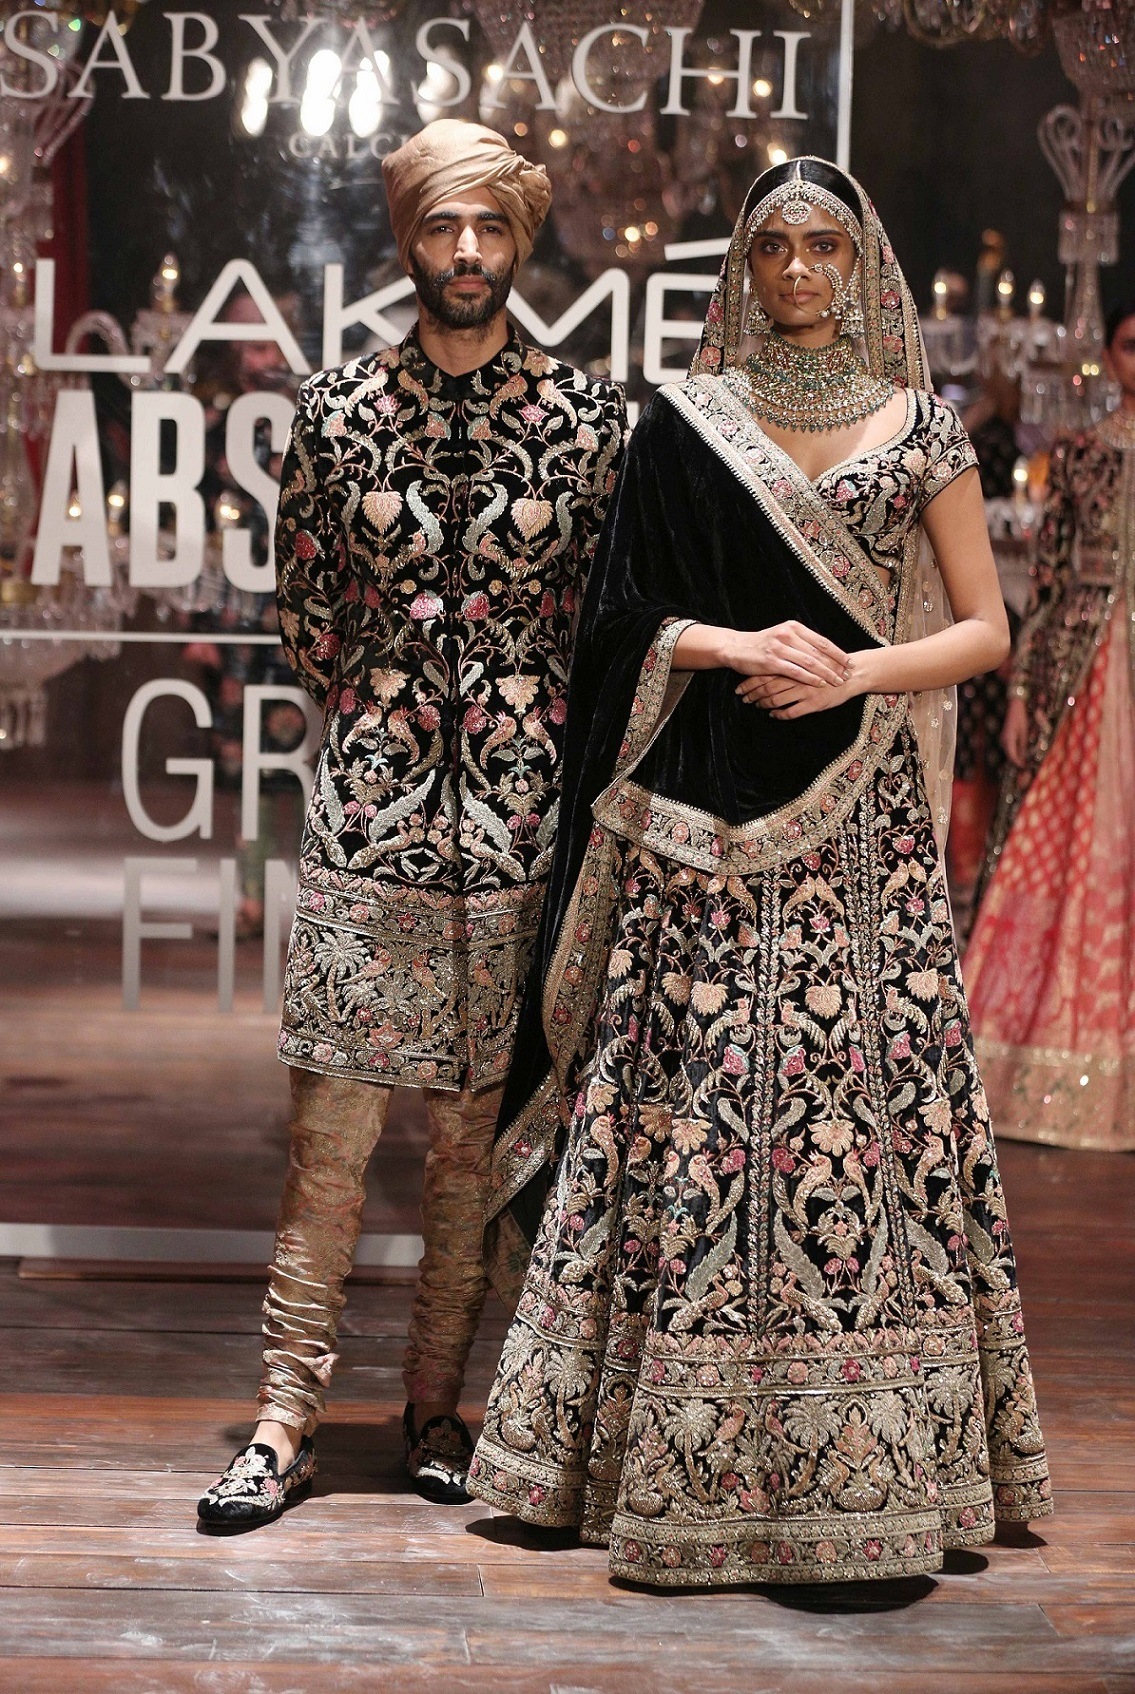 Models at the Lakme Absolute Grand Finale by Sabysachi (2).jpg